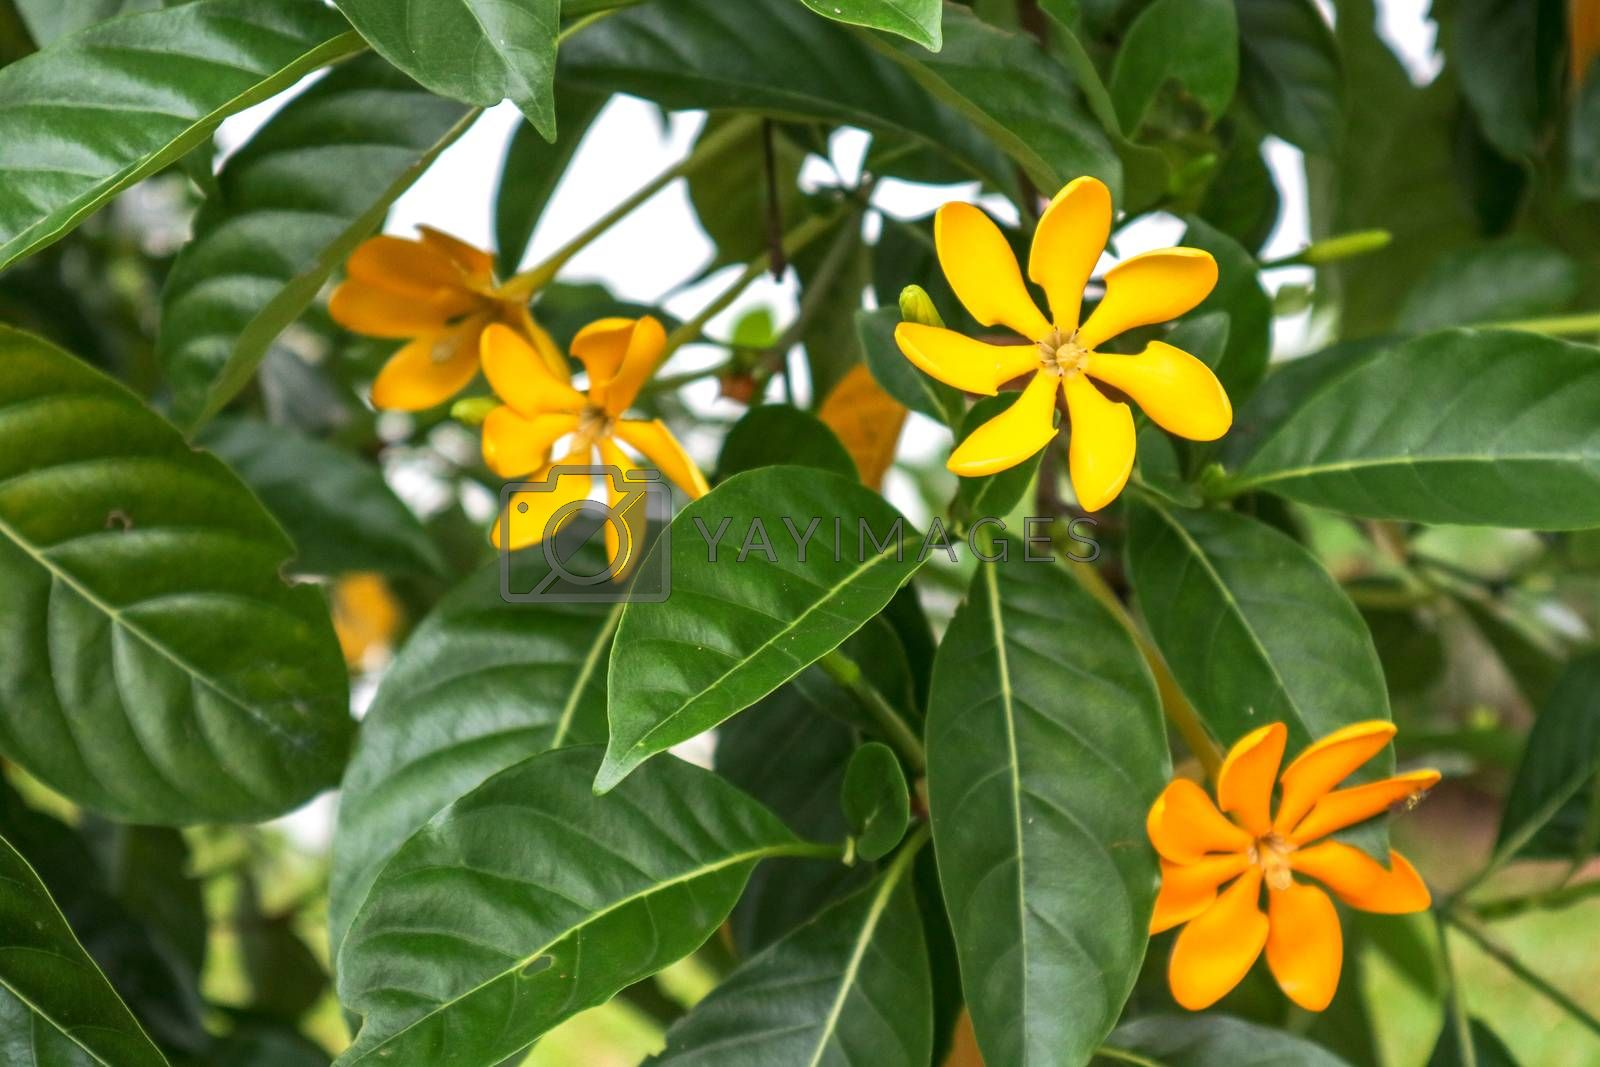 Gardenia carinata is a large tropical shrub or small tree, Blooms from spring to fall